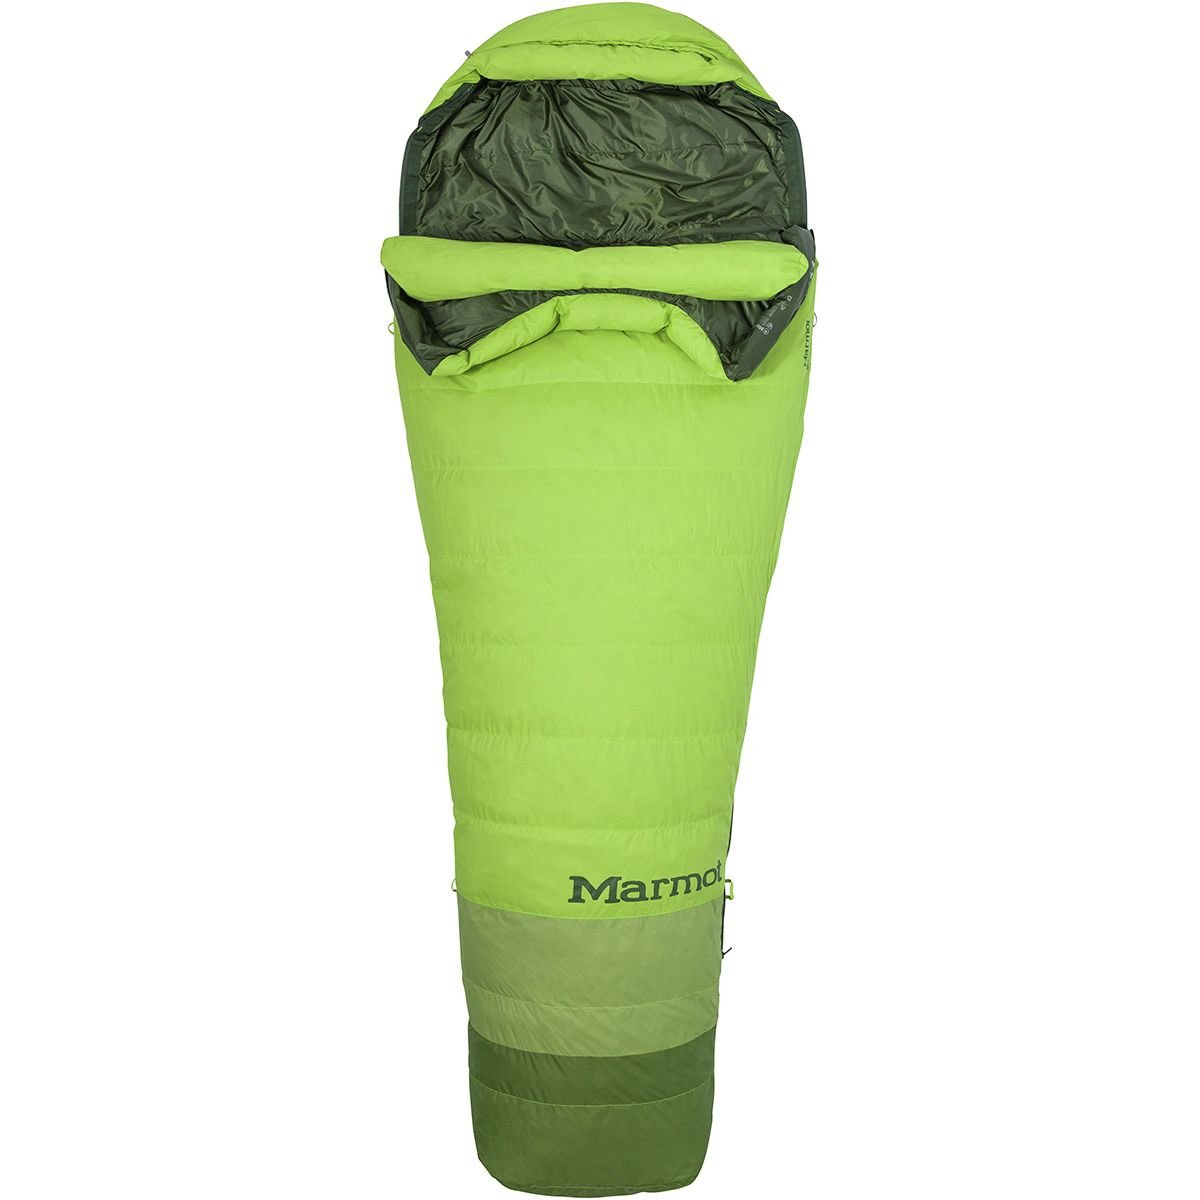 An image of Marmot Never Winter TL 39220-4794-L Sleeping Bag